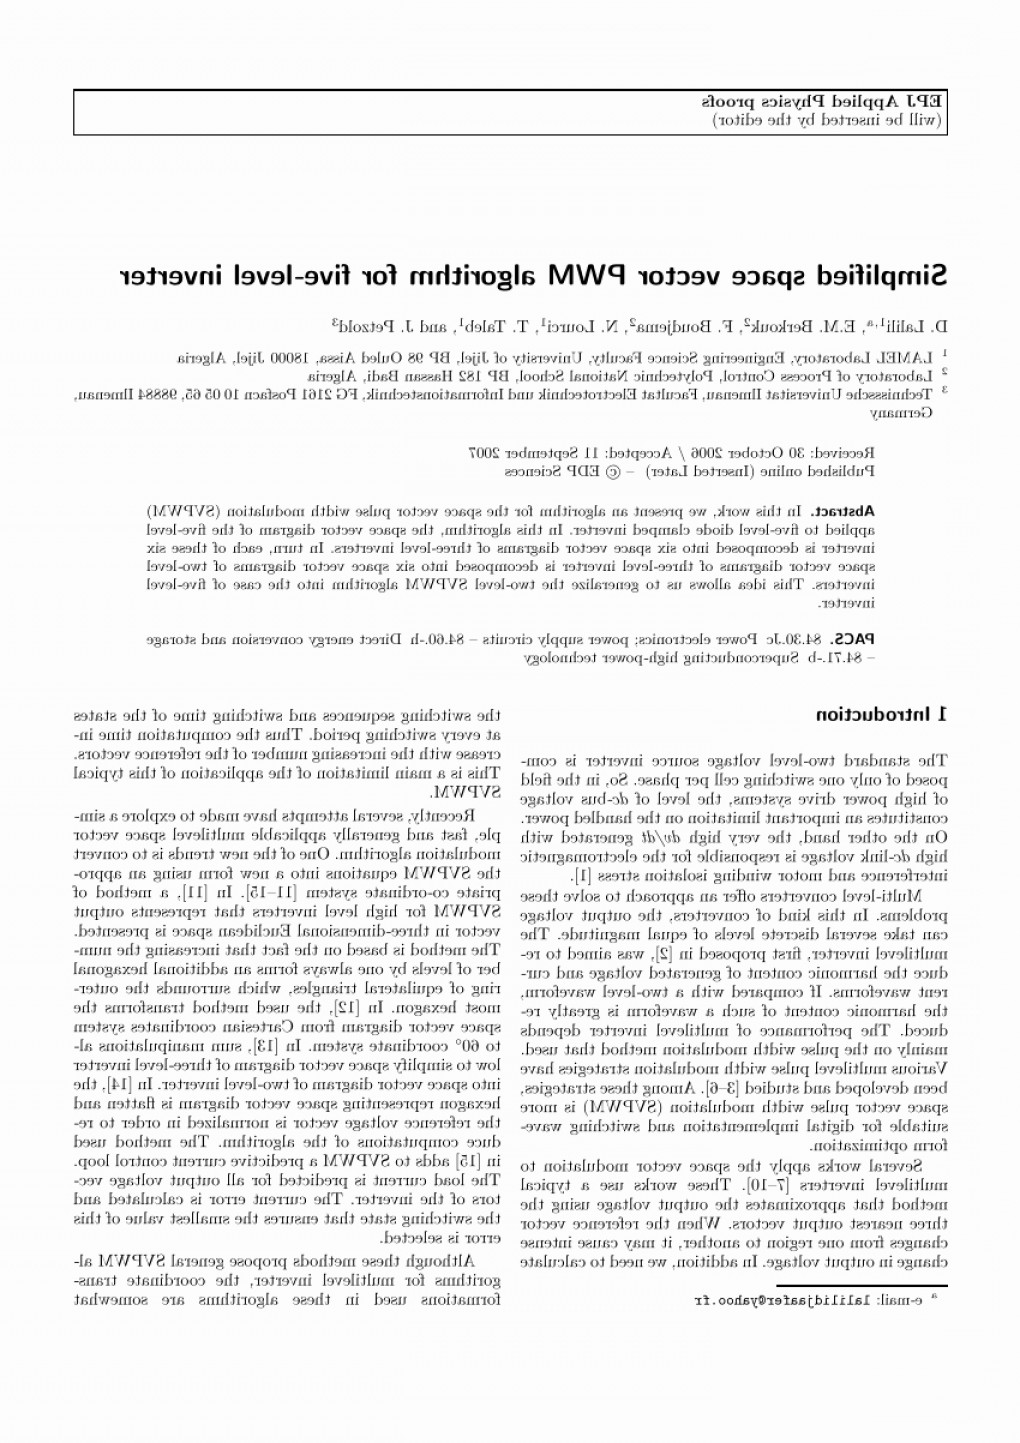 Space Vector PWM: Vector Power Invertor Beautiful Pdf A Simplified Space Vector Pulse Width Modulation Algorithm For